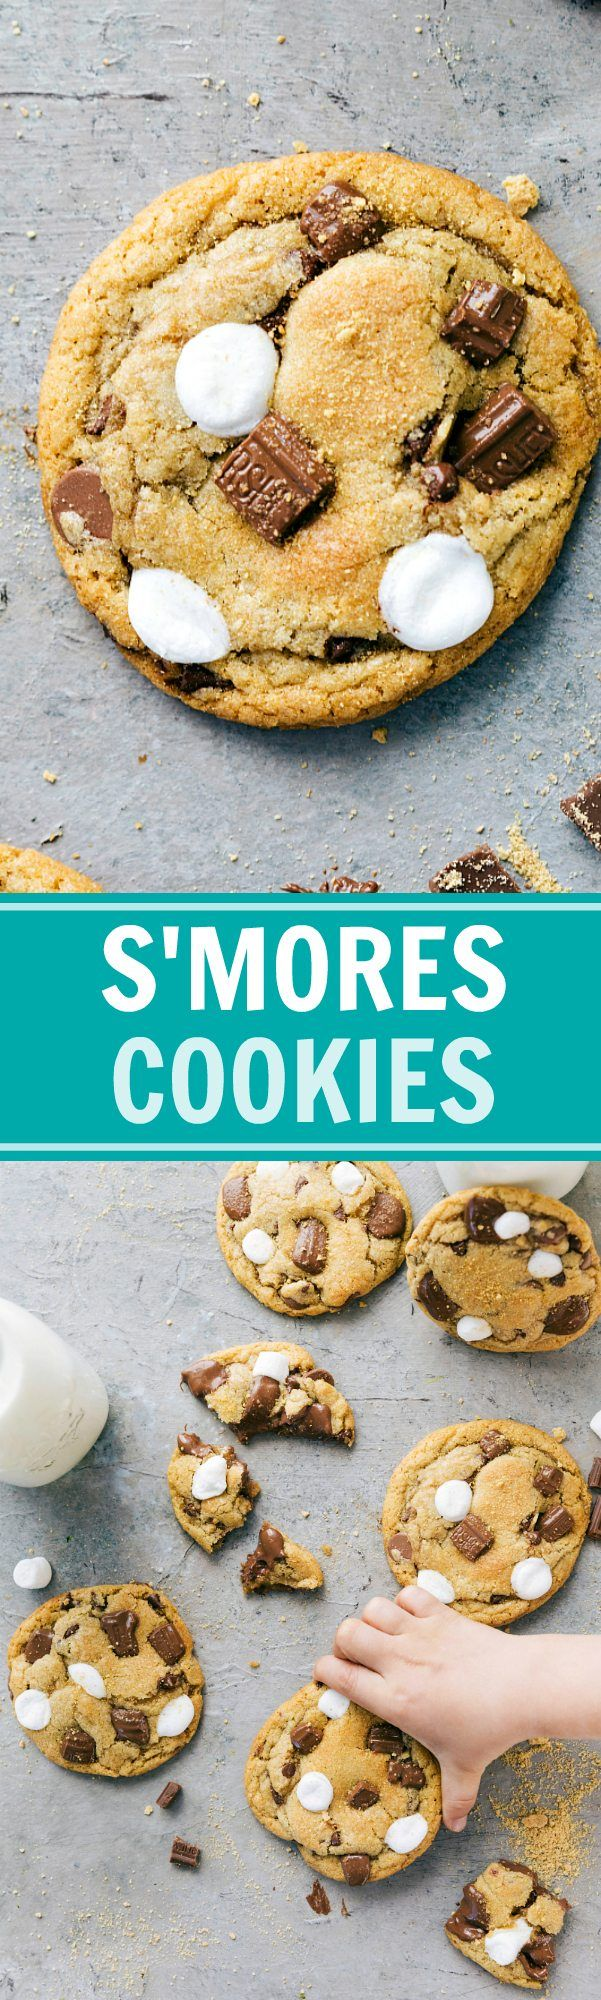 S'mores Cookies are thick, chewy, soft, and packed with graham cracker crumbs, miniature marshmallows, and chocolate! These cookies are simple to make!